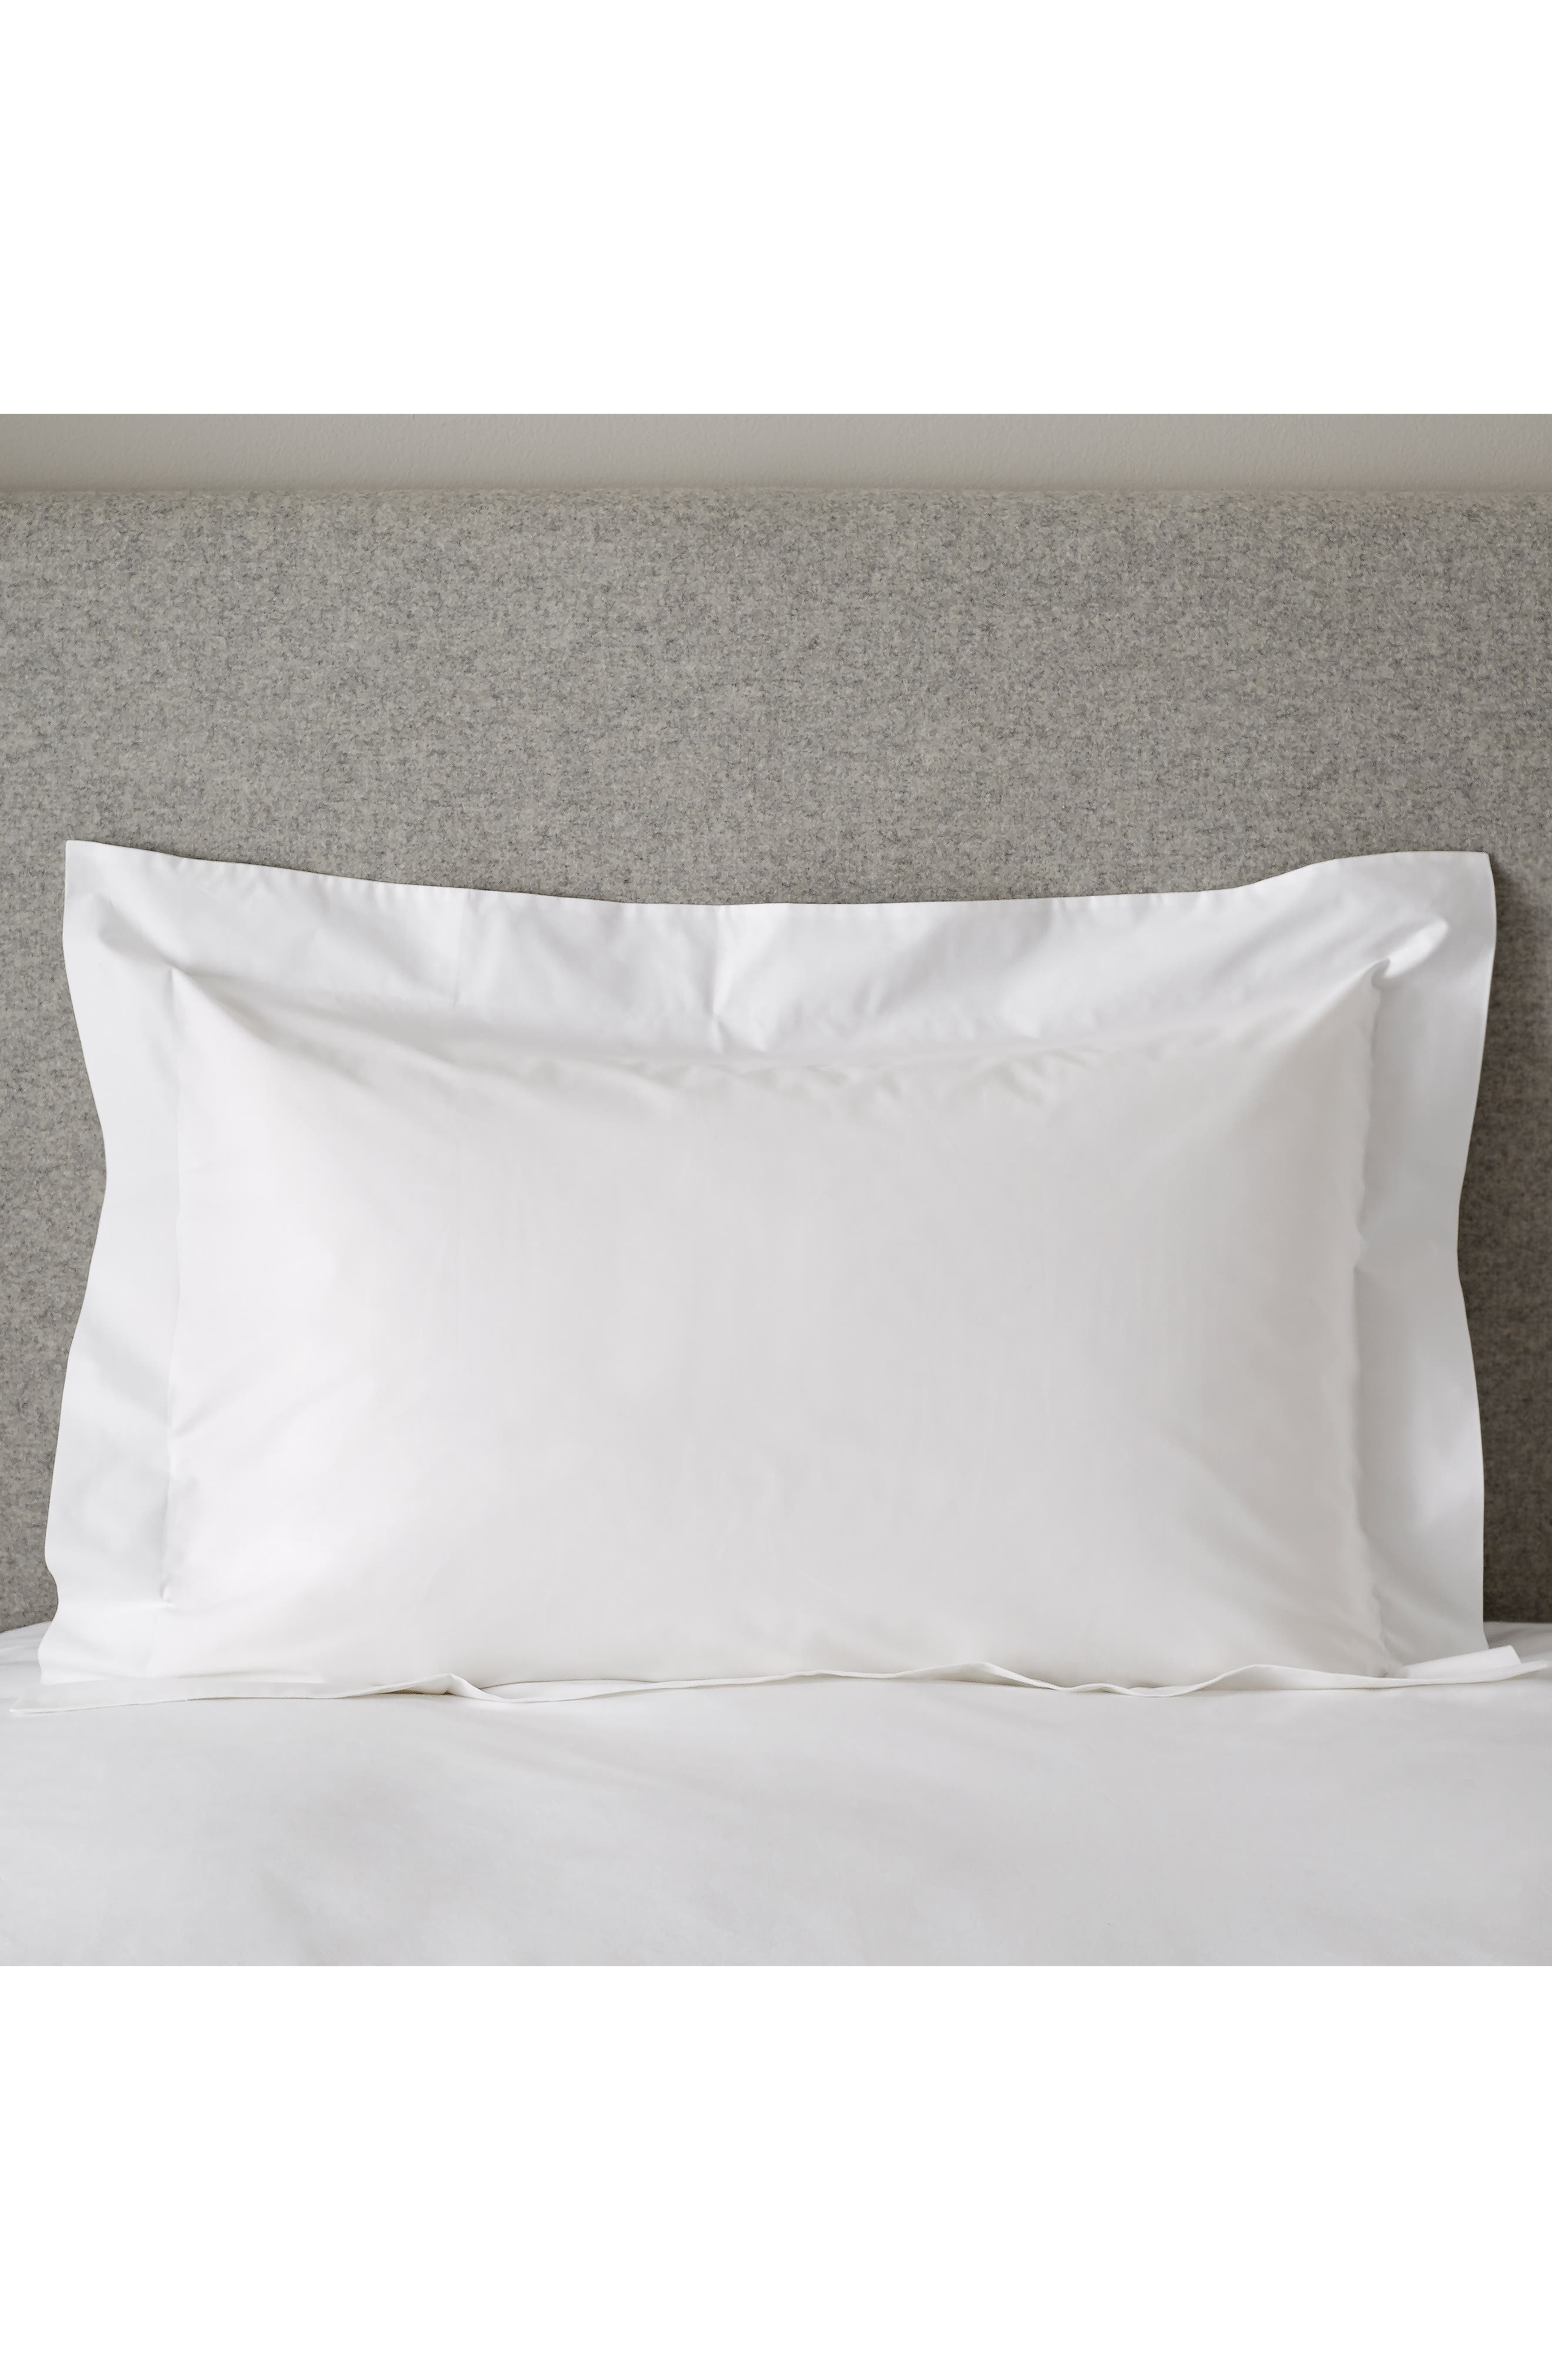 THE WHITE COMPANY 200 Thread Count Egyptian Cotton Oxford Set of 2 Shams, Main, color, WHITE